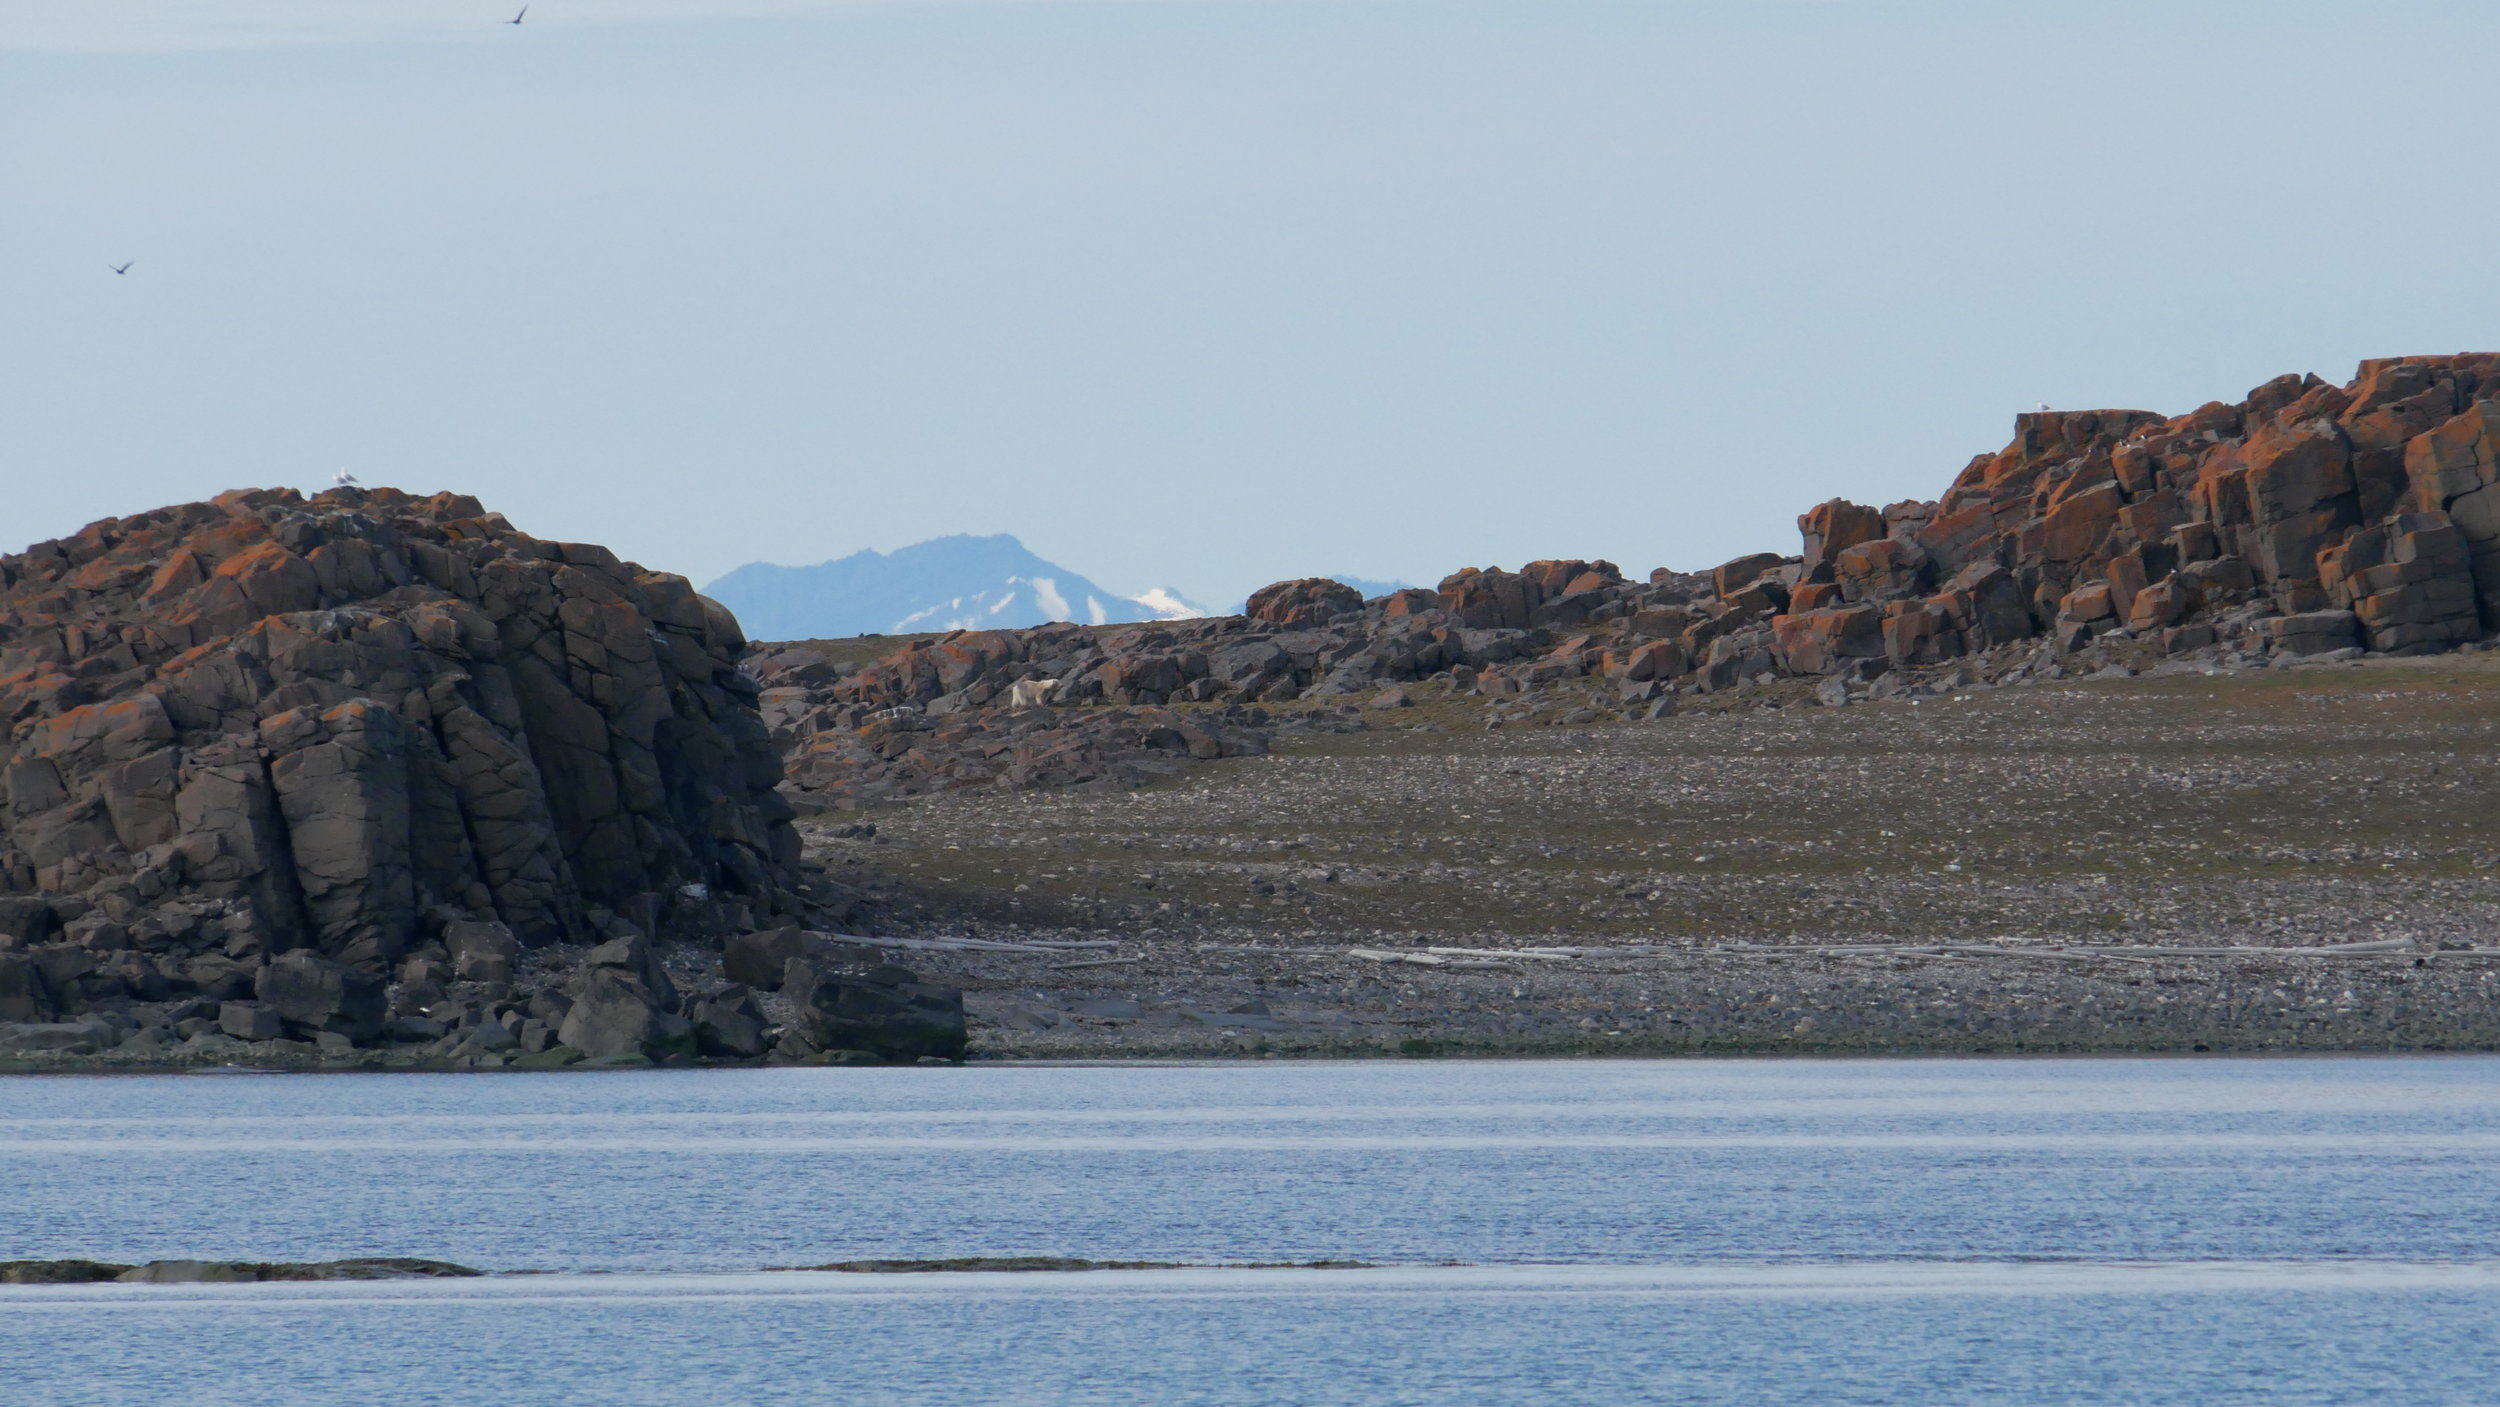 This was the closest we got to a polar bear, spotted cutting about Gåsøyane (Goose Island) on the prowl for nests.